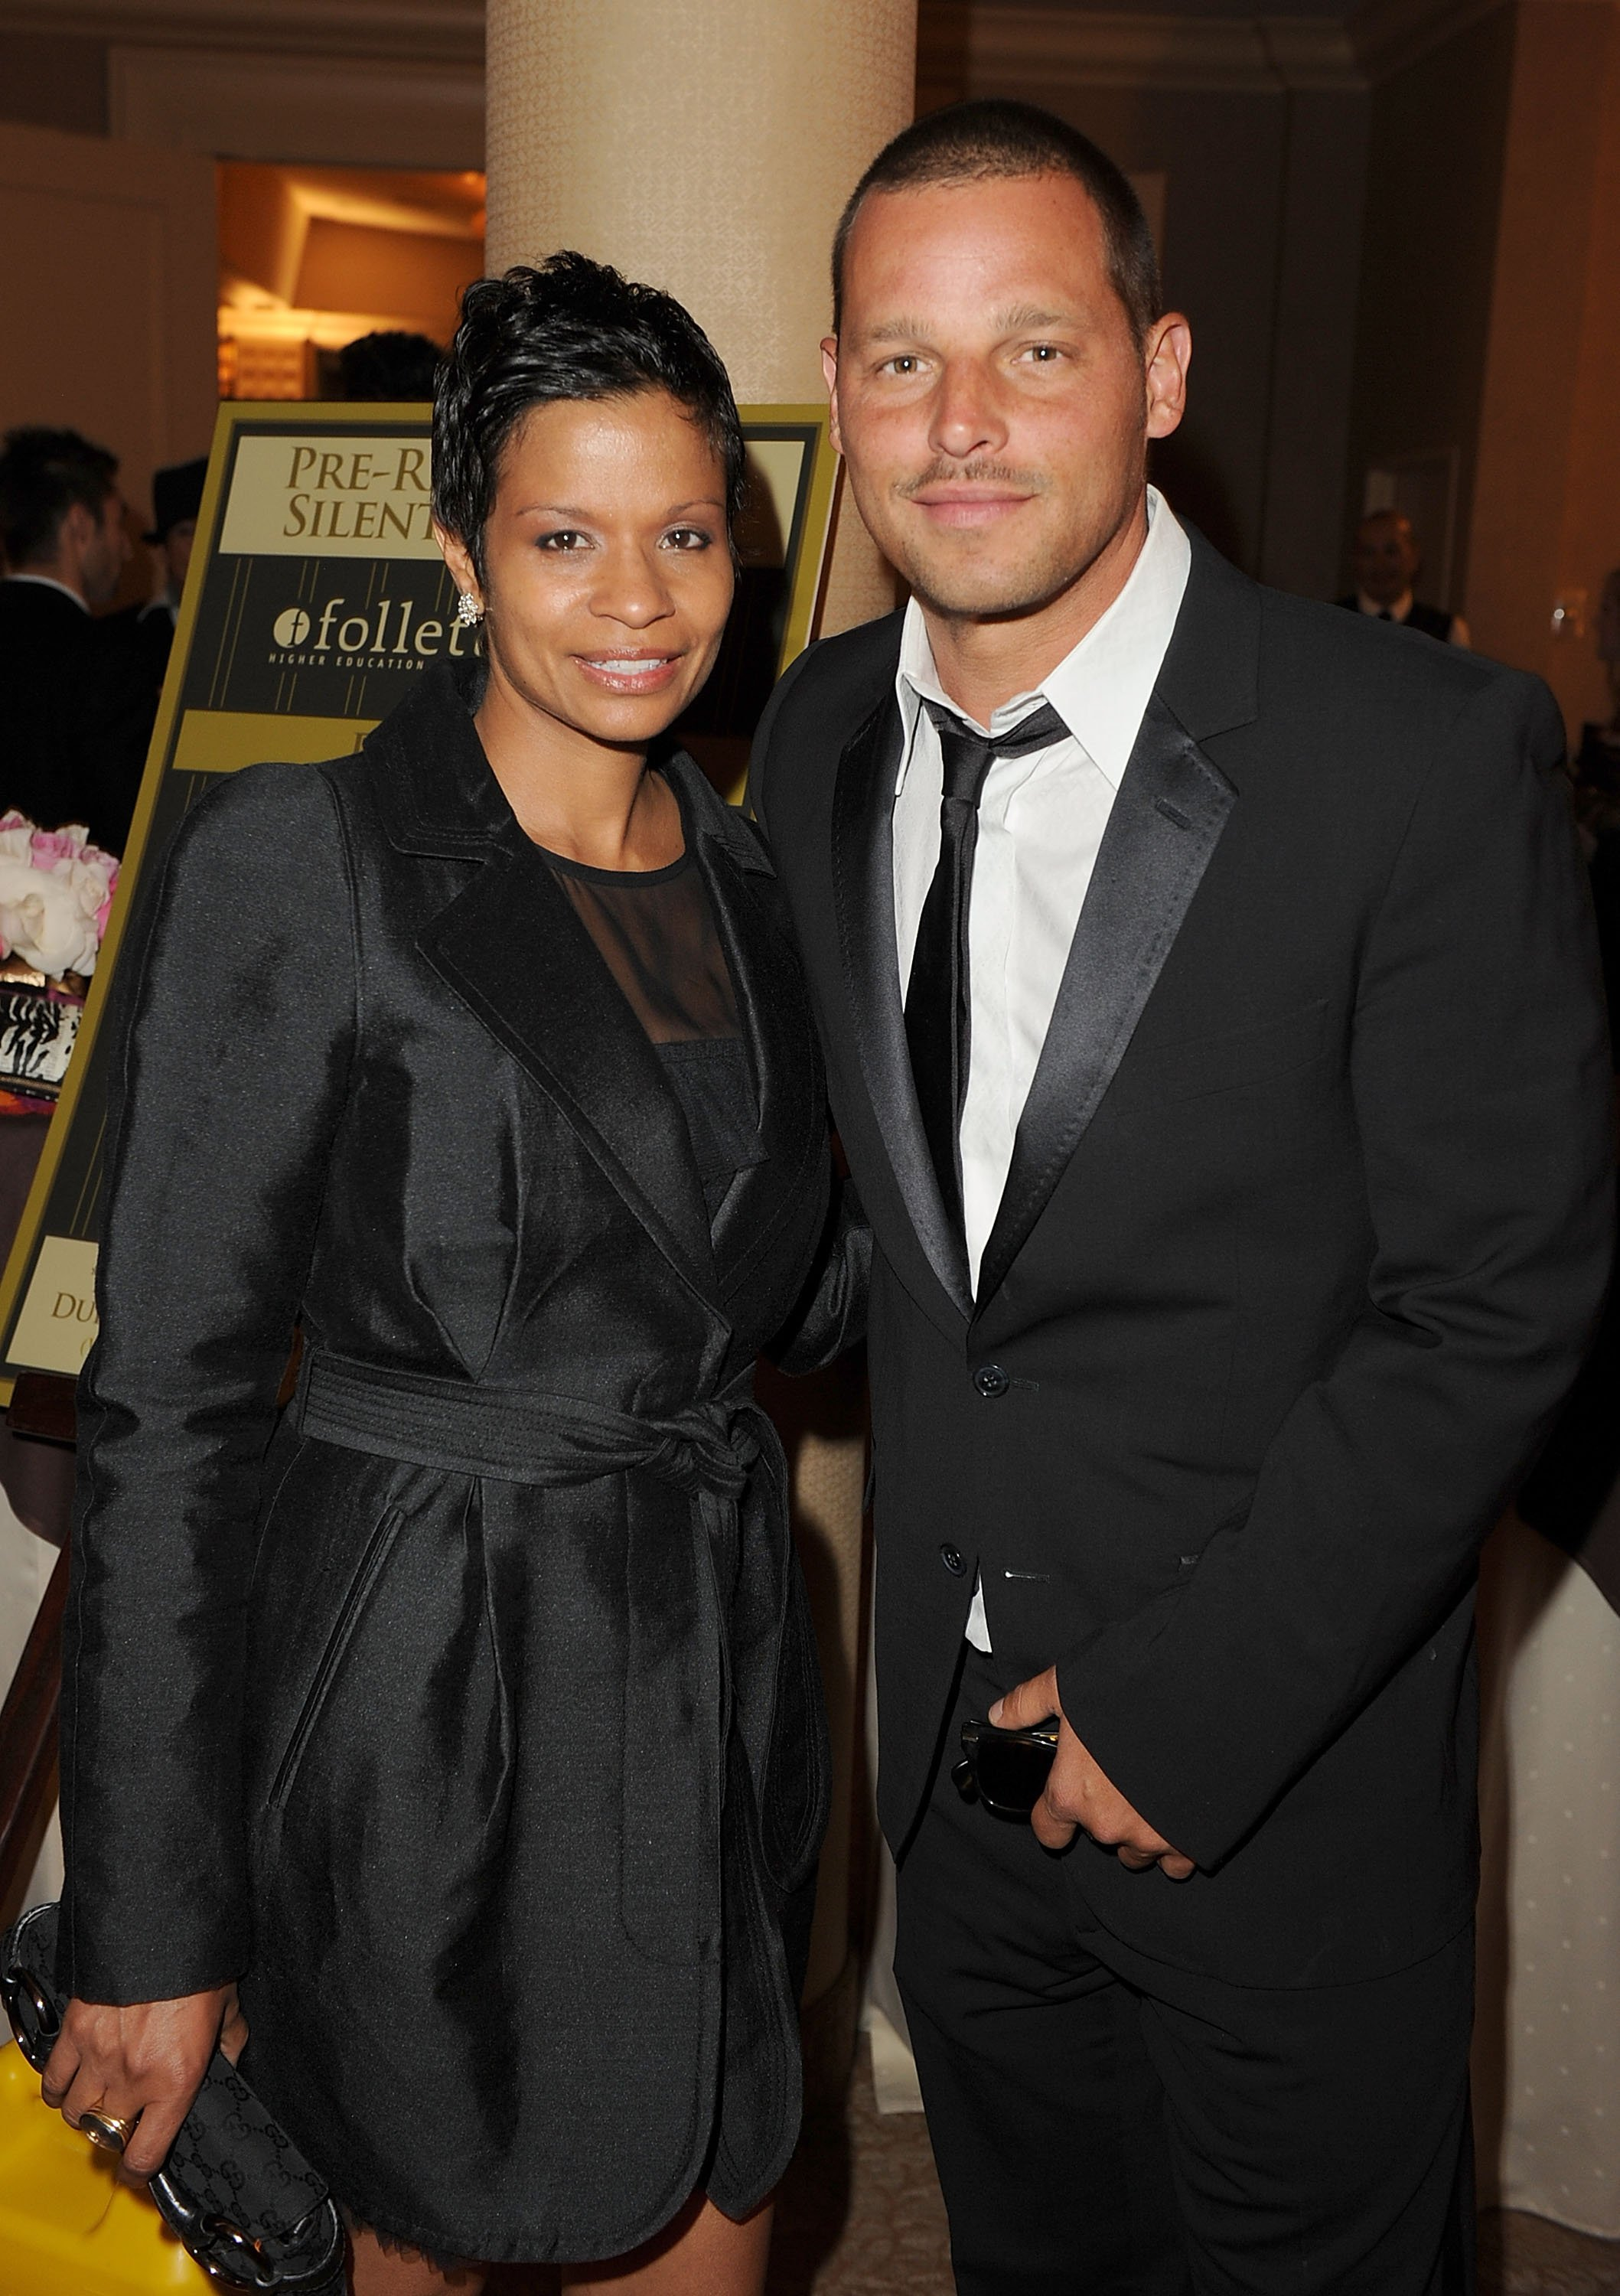 Justin Chambers and his wife Keisha Chambers attend the 2nd Annual Thirst Project Gala at The Beverly Hilton hotel on June 28, 2011, in Beverly Hills, California. | Source: Getty Images.